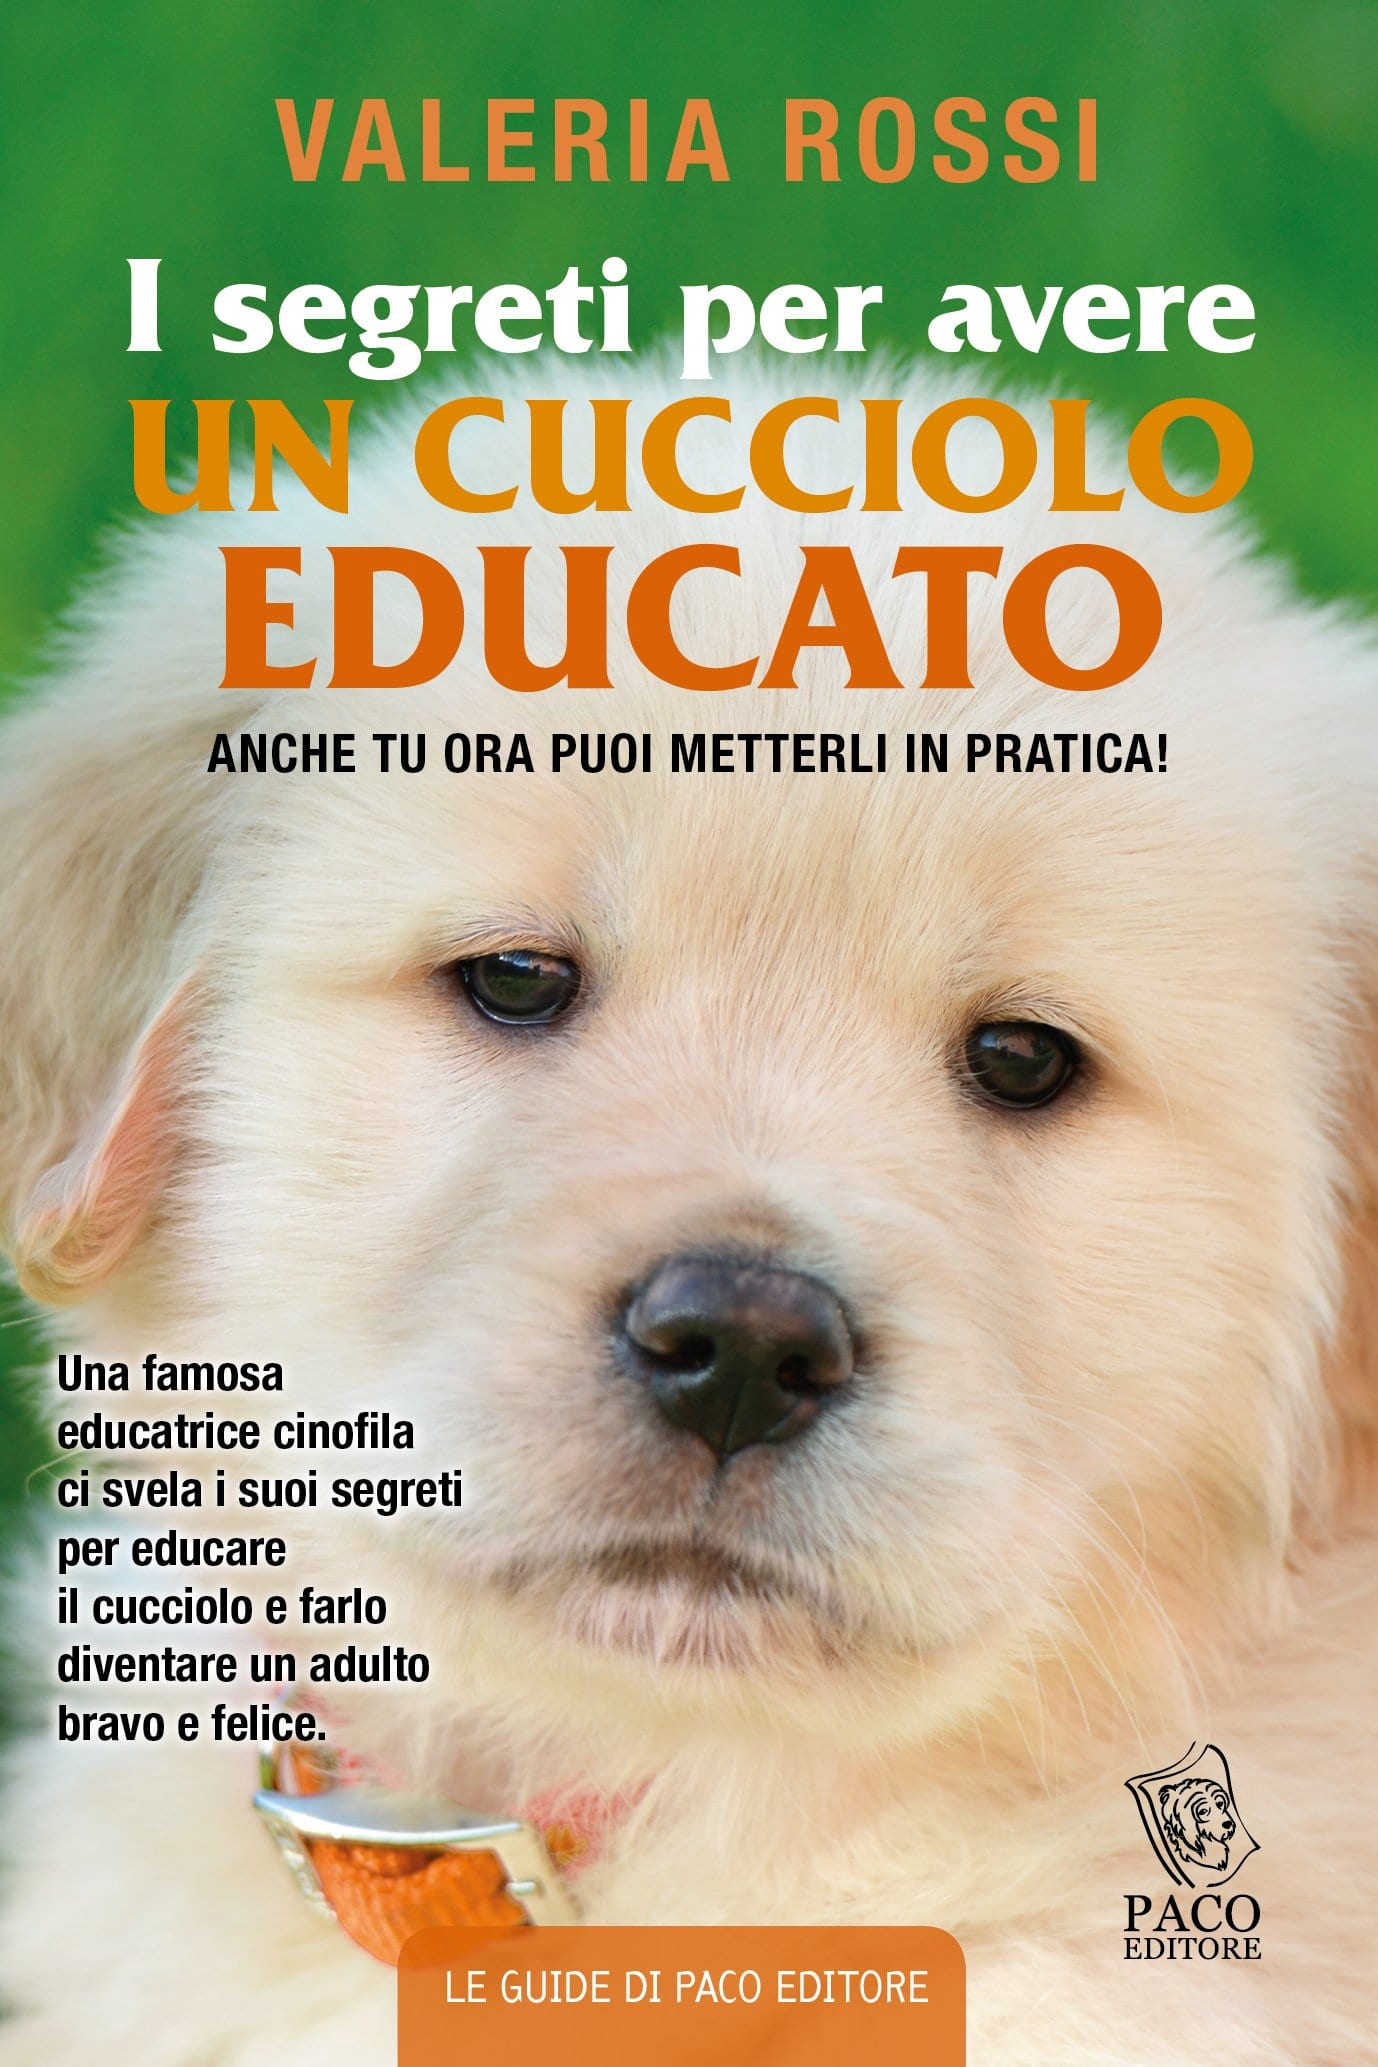 Libro Golden Retriever Quotil Cucciolo Educato Quot Valeria Rossi Per Paco Editore Ti